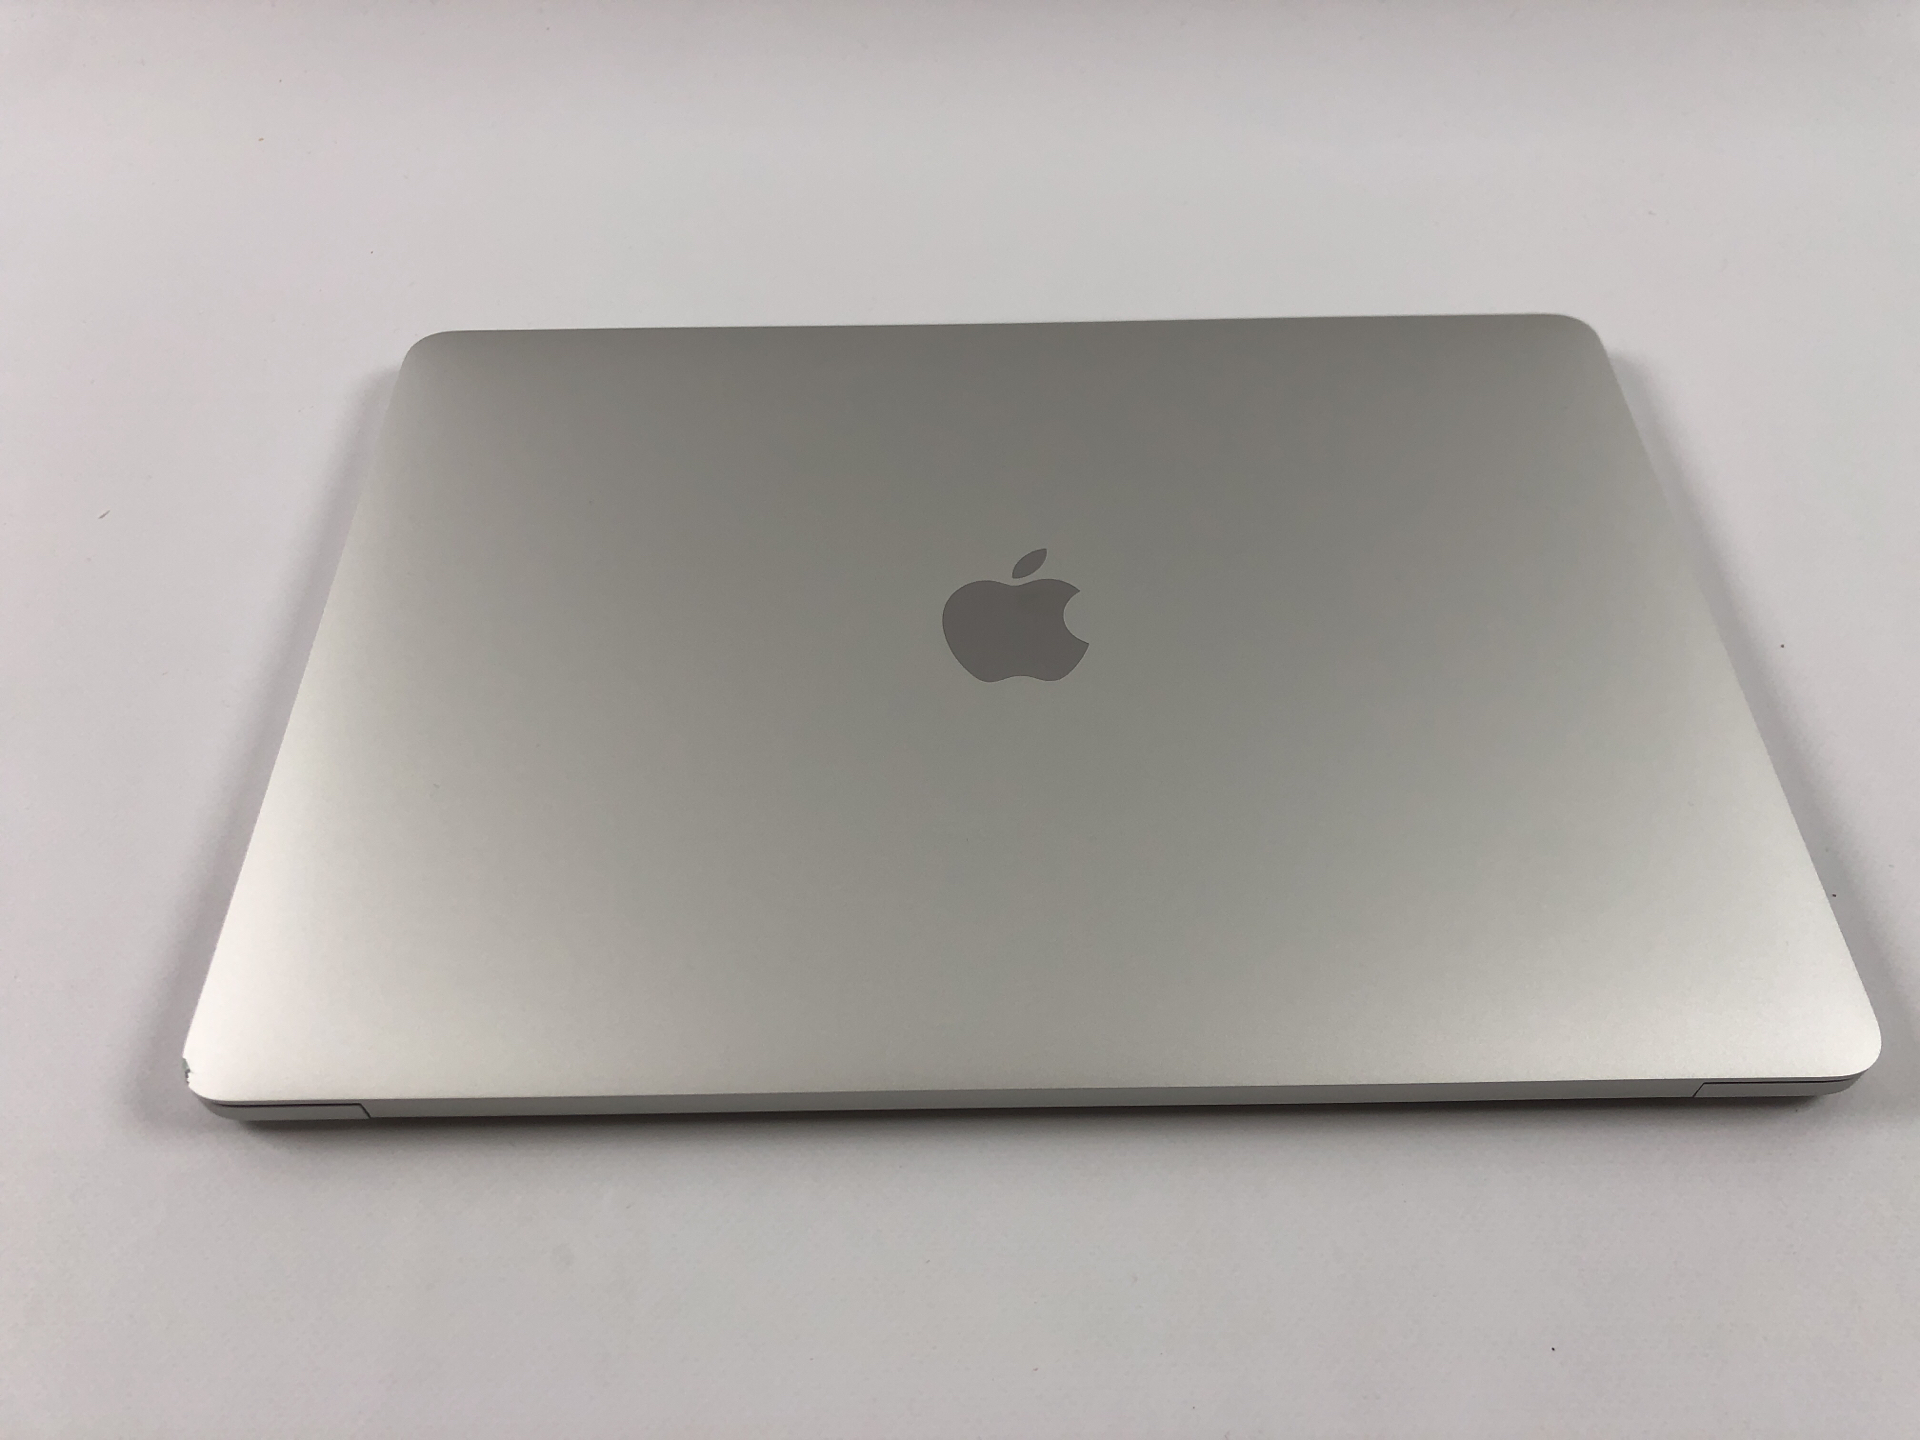 "MacBook Pro 13"" 4TBT Mid 2018 (Intel Quad-Core i5 2.3 GHz 8 GB RAM 256 GB SSD), Silver, Intel Quad-Core i5 2.3 GHz, 8 GB RAM, 256 GB SSD, Afbeelding 2"